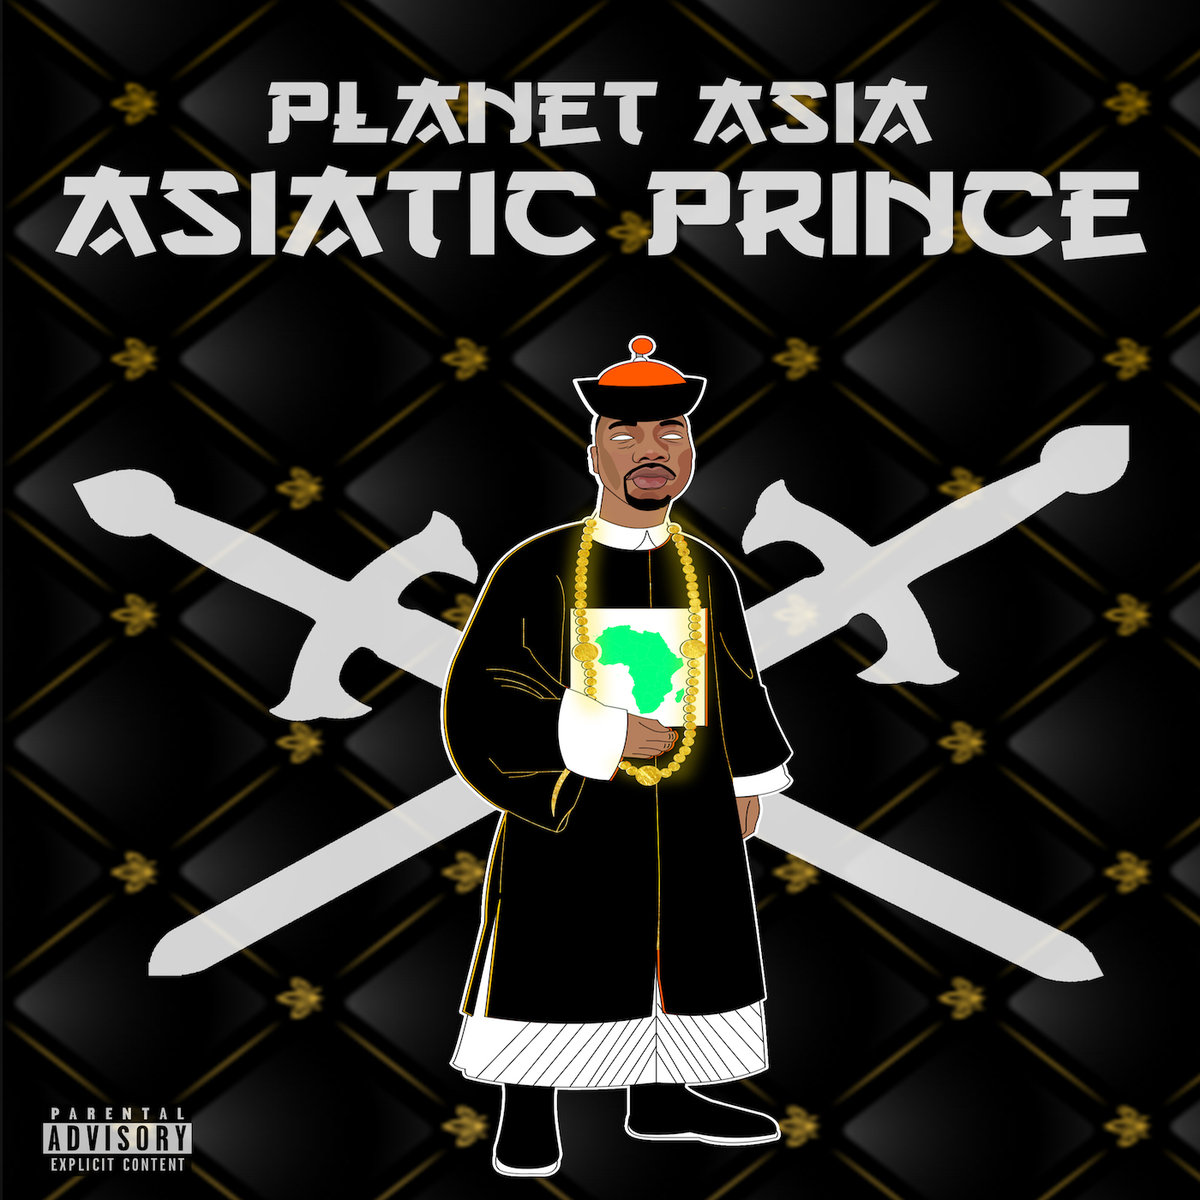 Asiatic_prince